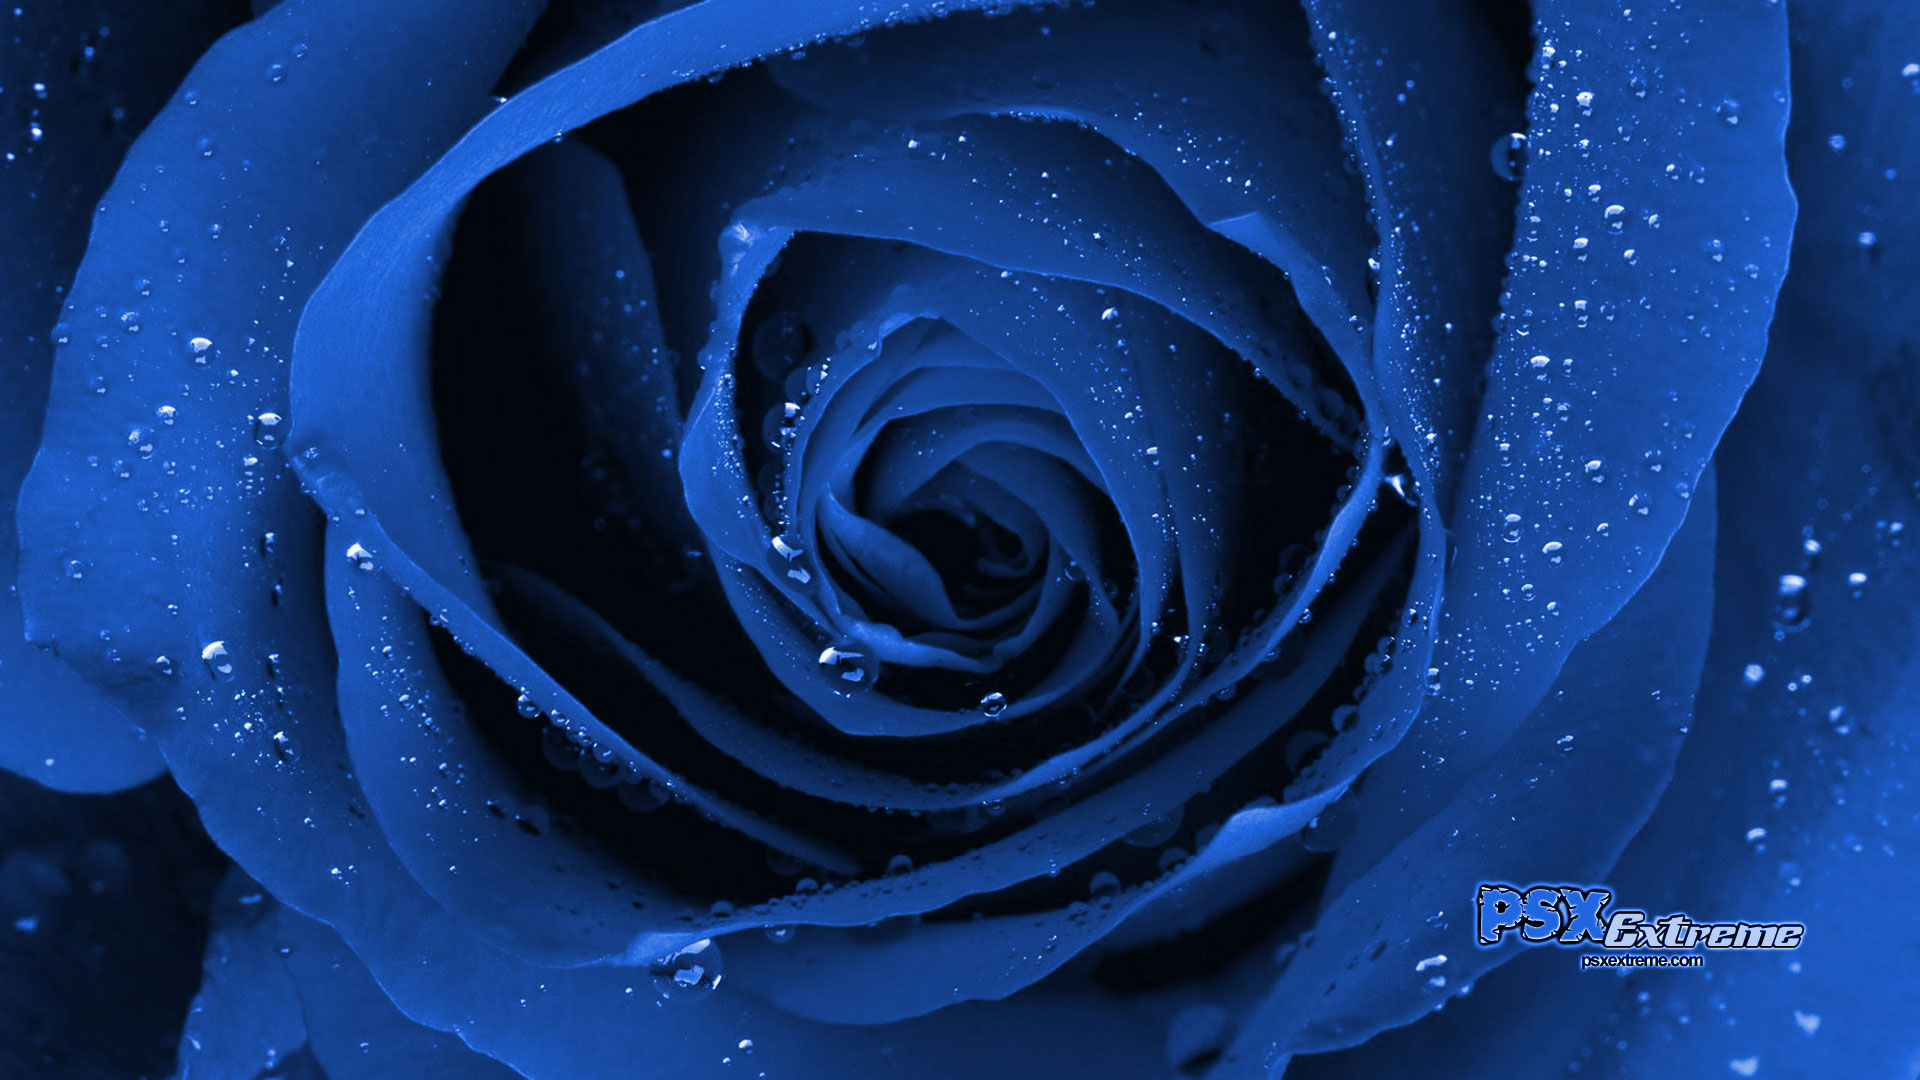 This is a Blue Rose wallpaper. This Blue Rose background can be used for